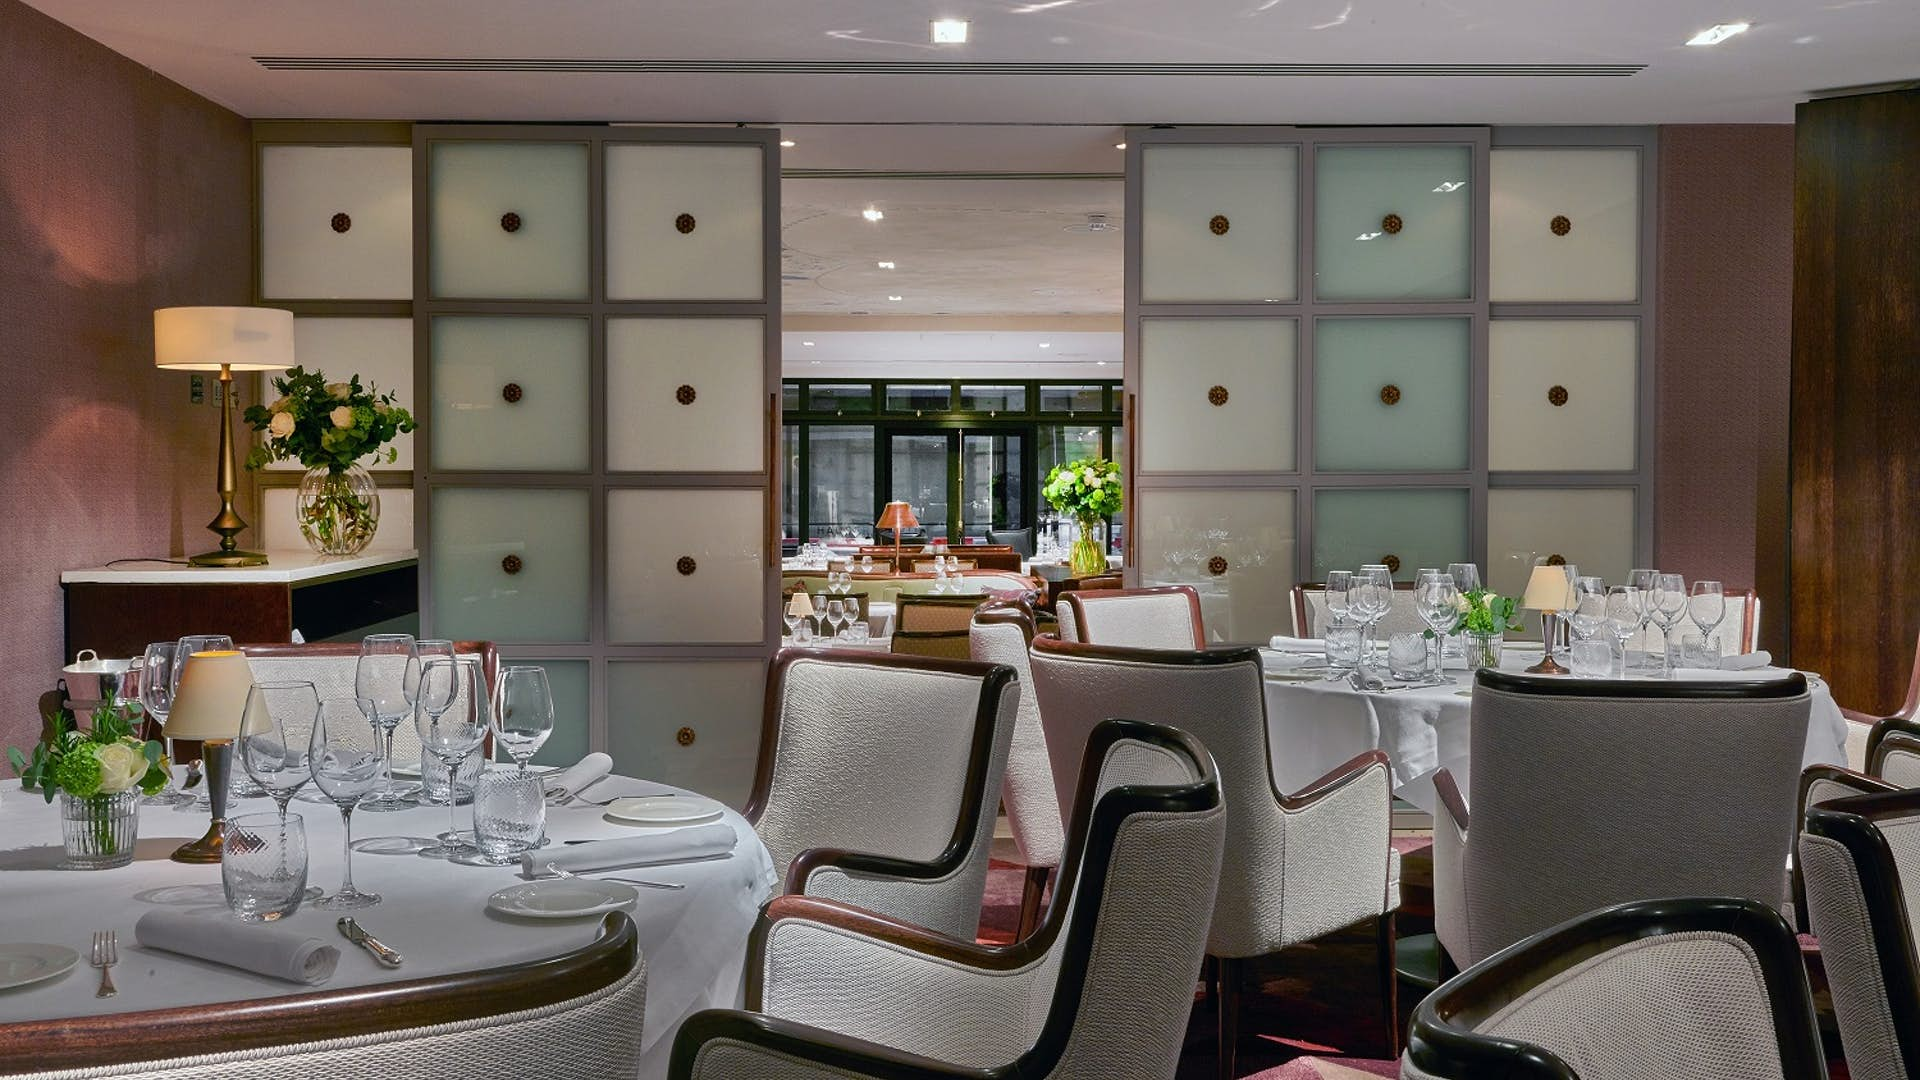 Private dining rooms business hire sartoria for Best private dining rooms mayfair